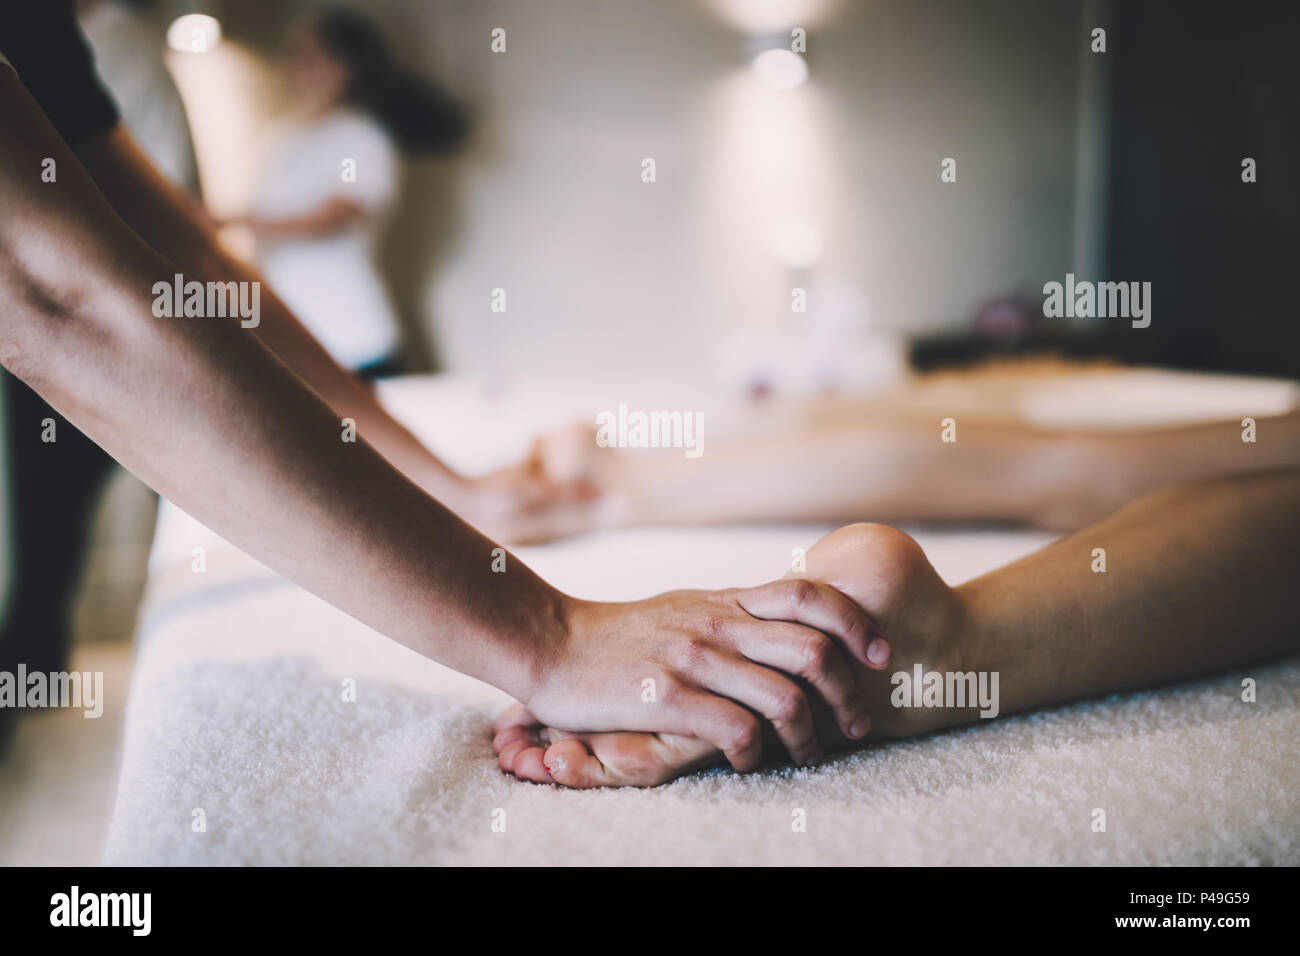 Foot and sole massage in therapeutic relax treatment - Stock Image